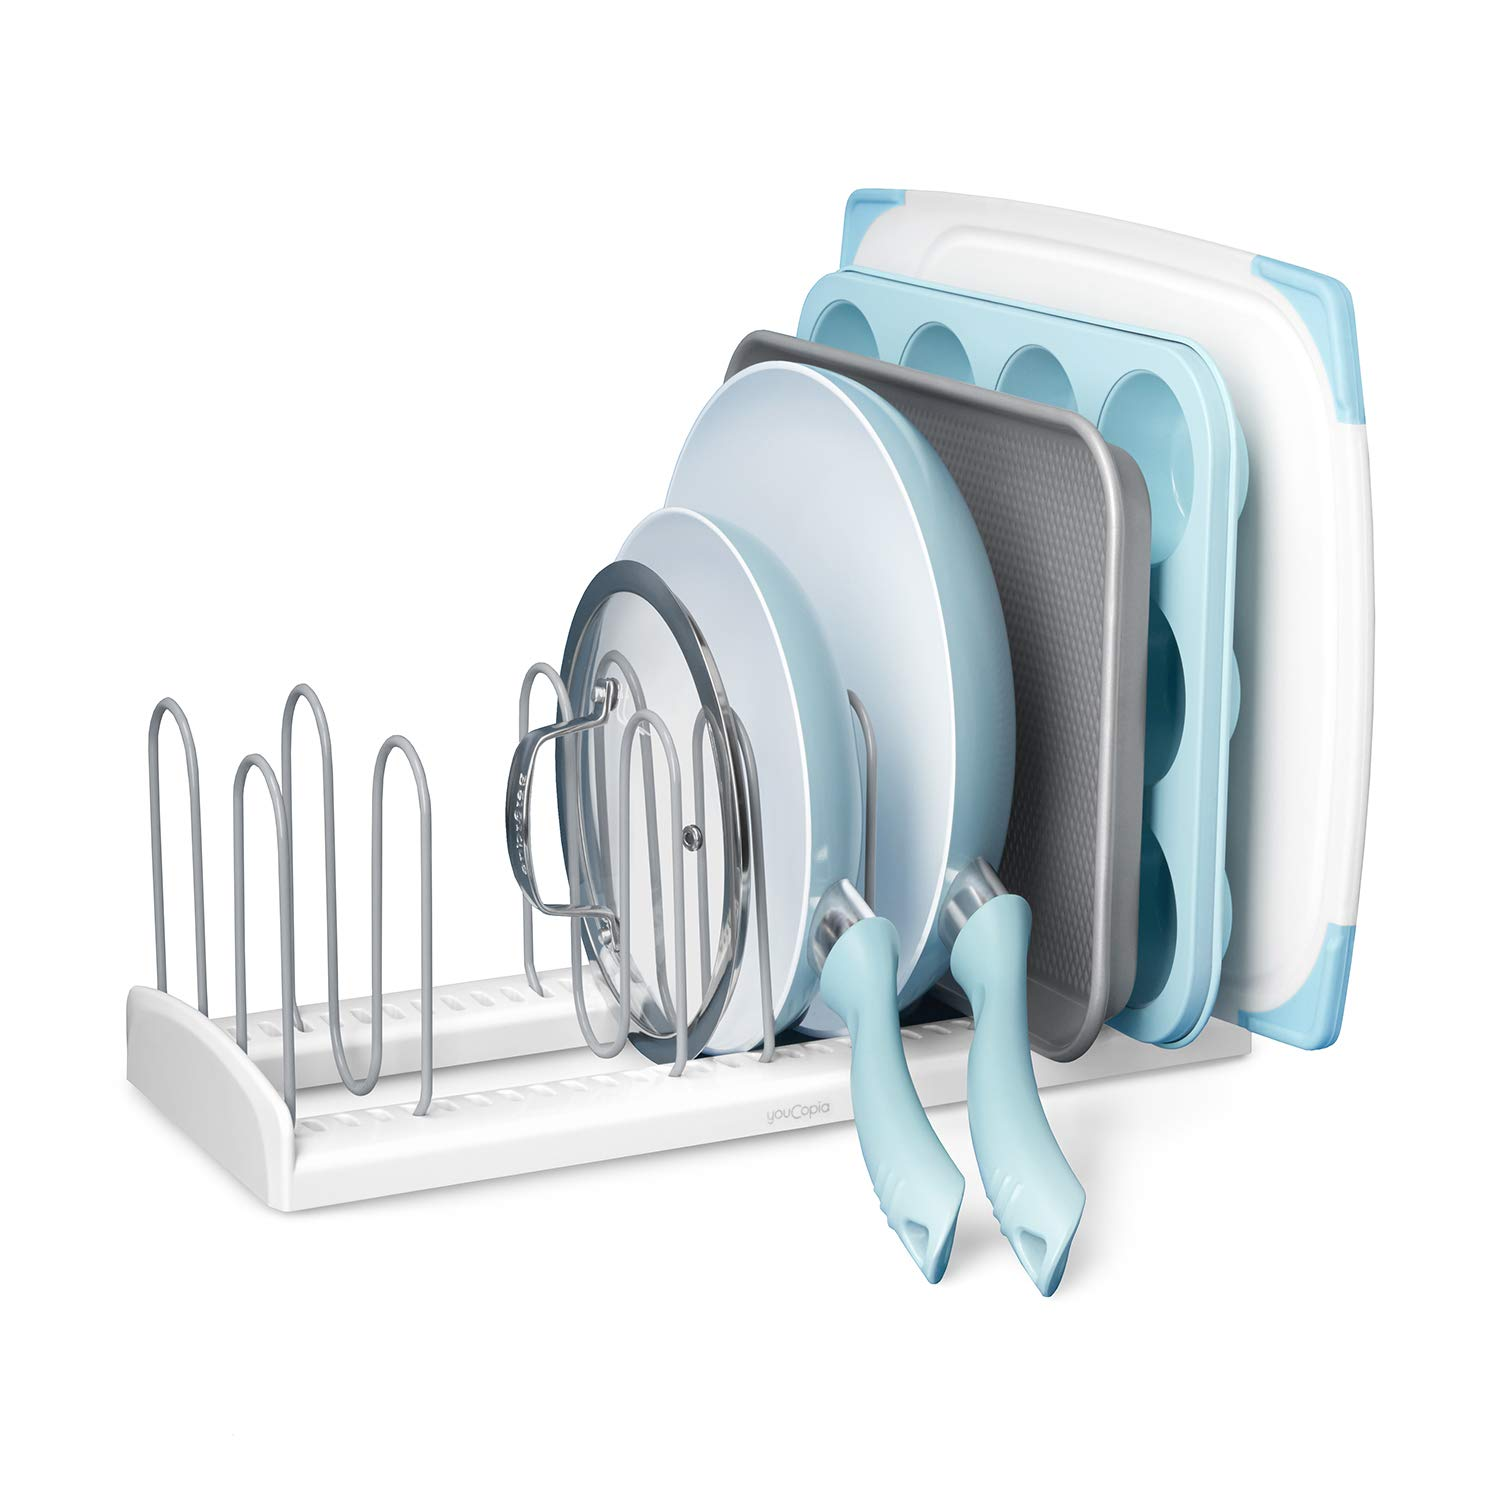 YouCopia 50157 Store More Adjustable Pan and Lid Rack, Large, White by YouCopia